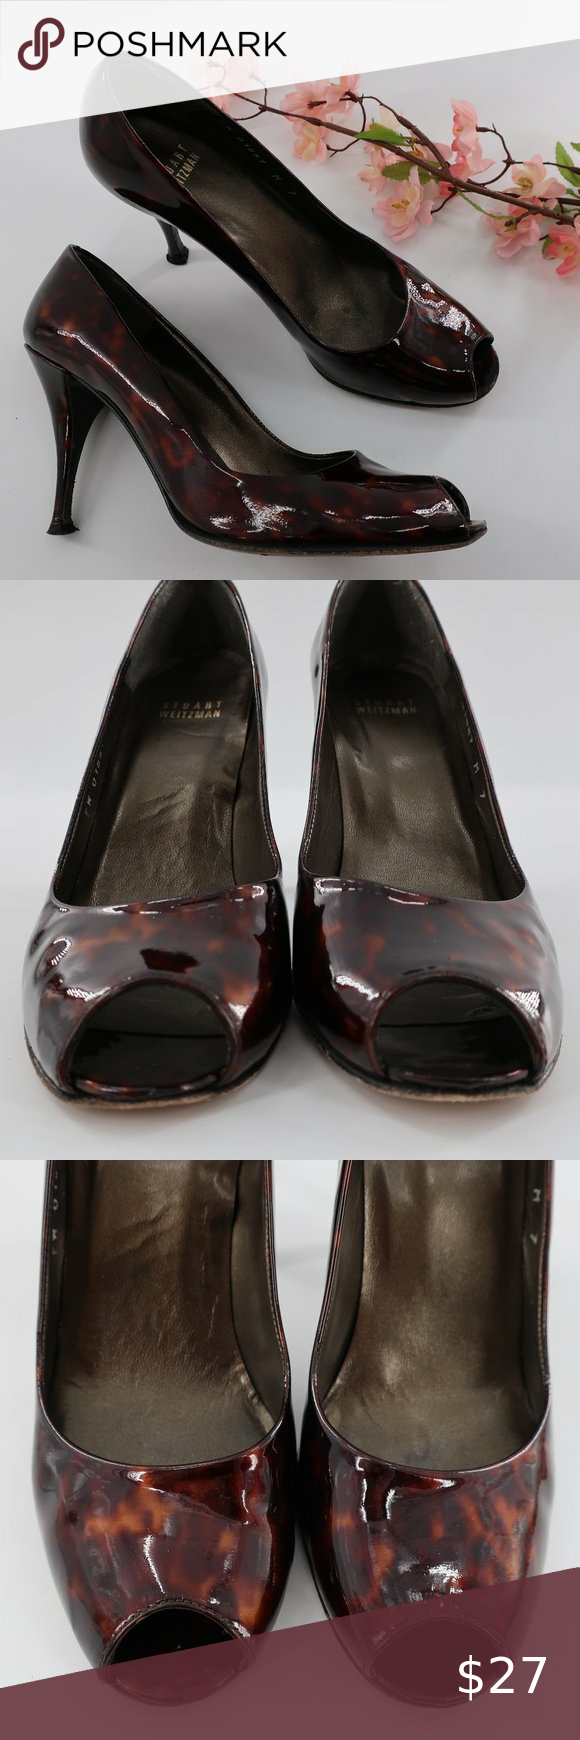 Stuart Weitzman Tortoiseshell Patent Pumps 7 M These are in excellent preowned condition with minimal wear to the heels.  Please see all pictures as they are the best descriptors  Size: 7 Medium Color: Bronze Material: Leather Style: Pumps  Designer/Label: Stuart Weitzman Heel Measures: 3-3/4